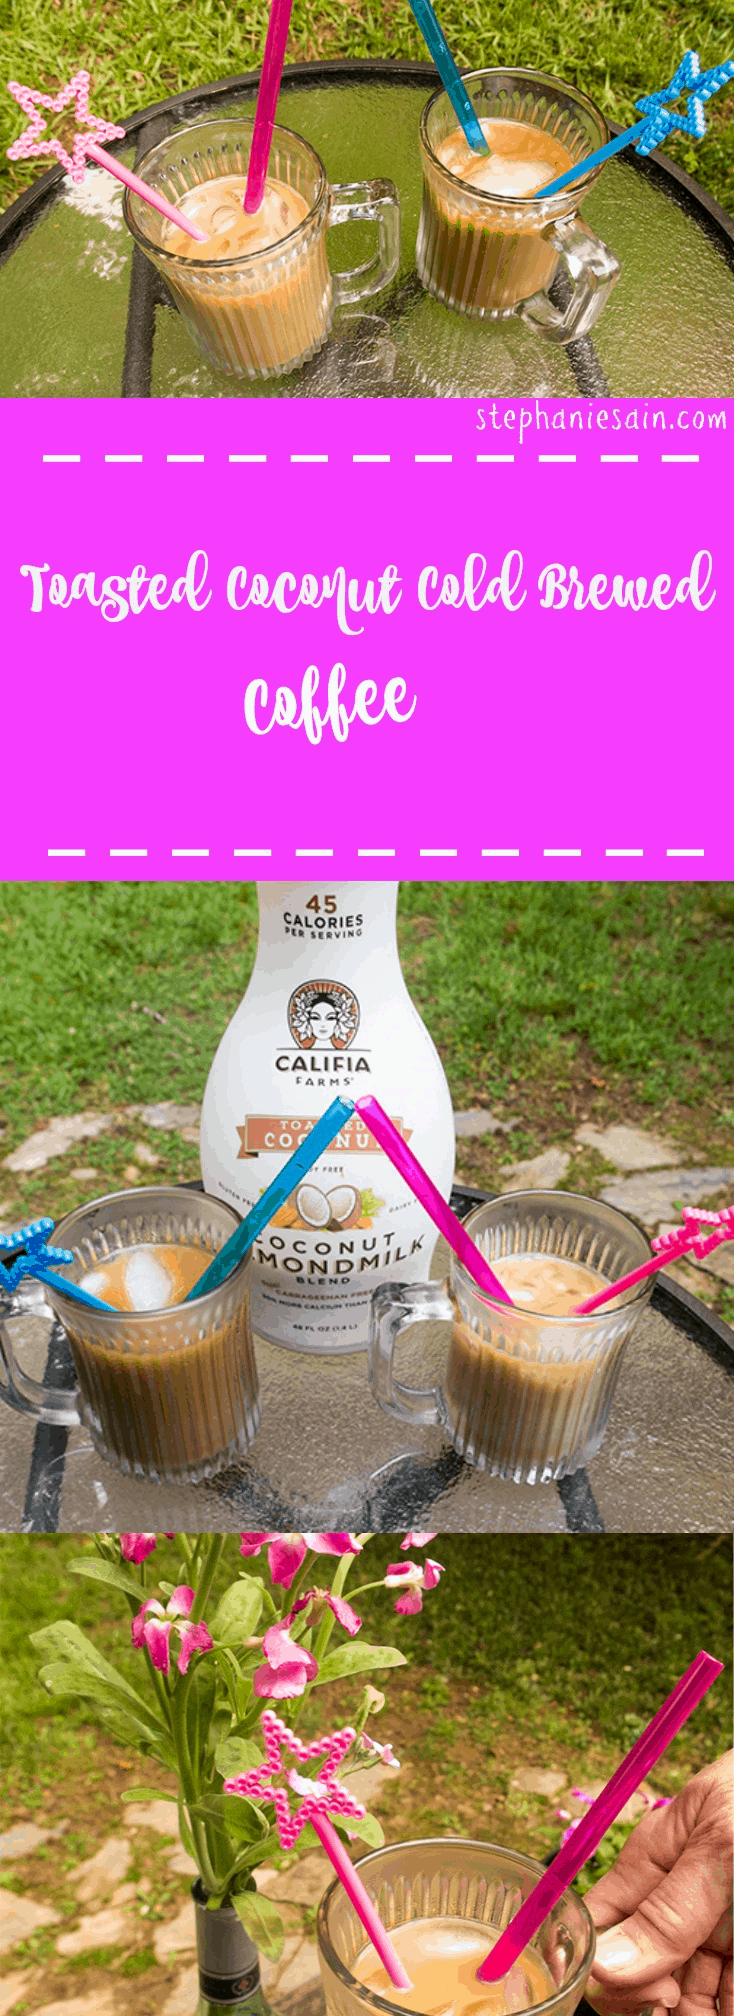 Toasted Coconut Cold Brewed Coffee is a healthier ice coffee that is vegan and gluten free